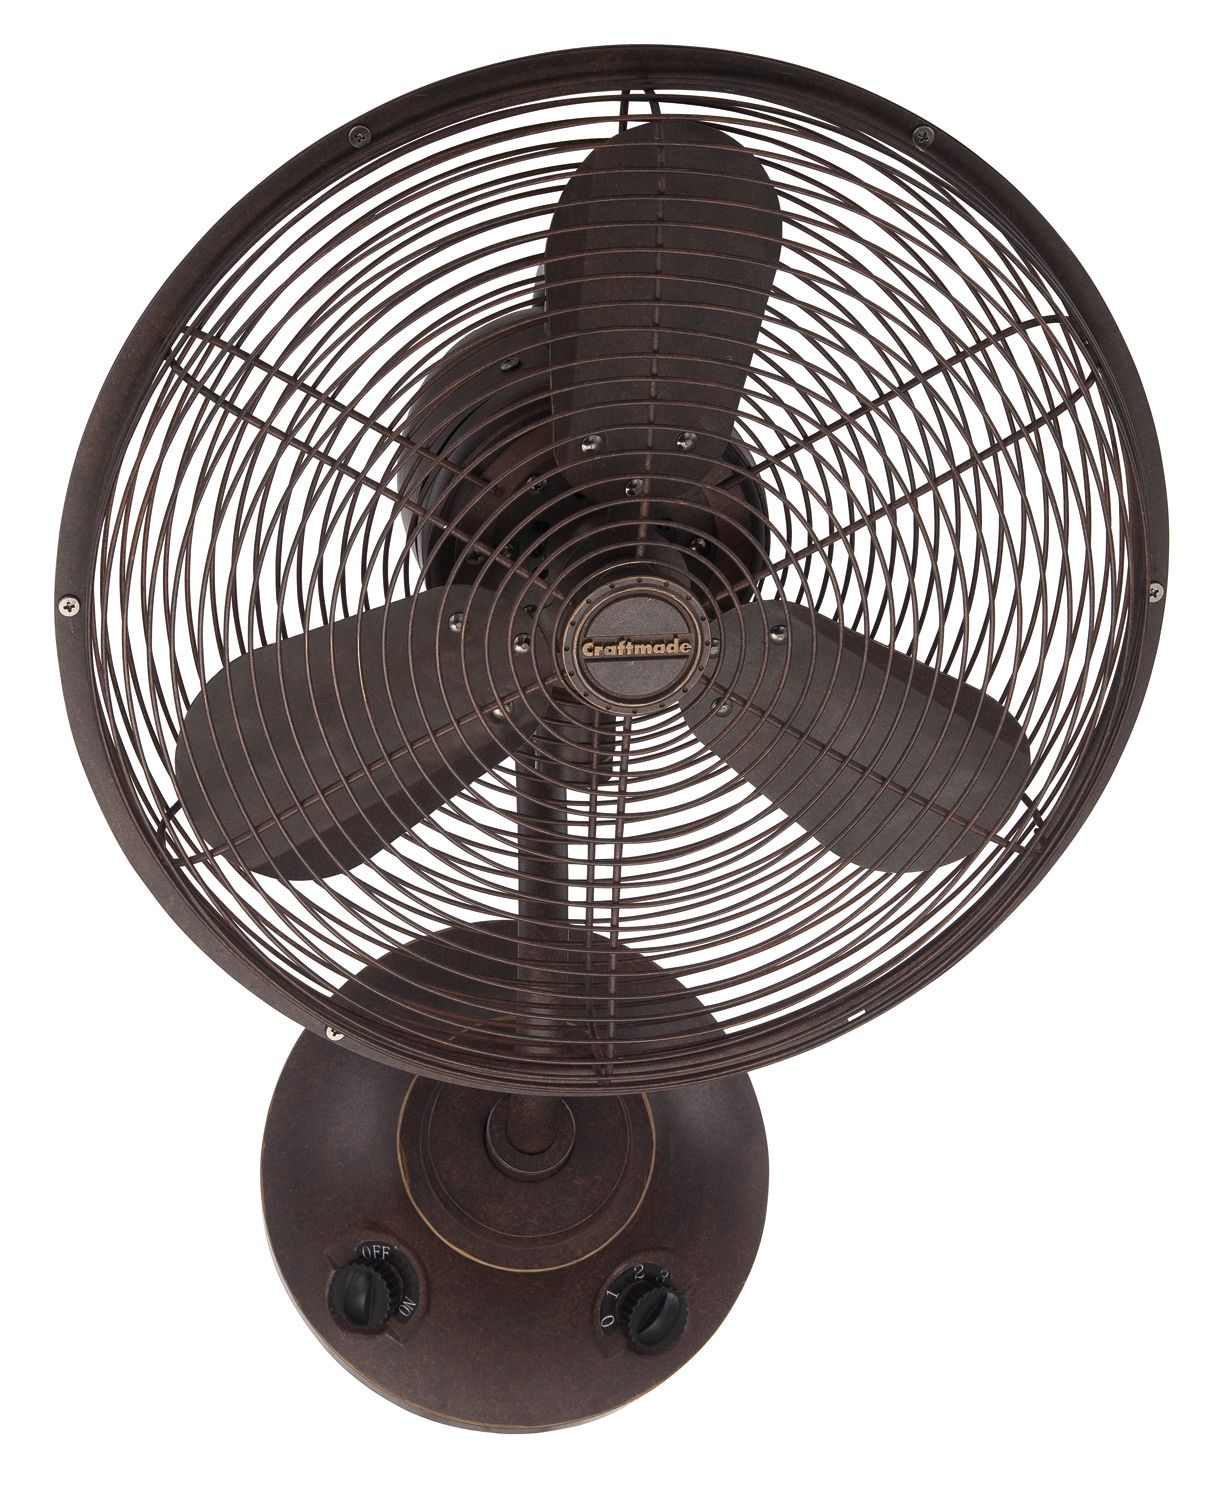 High Speed Outdoor Ceiling Fans: ORDERED THIS FAN (HAS CONTROL ON FAN AND CAN CONTROL FAN